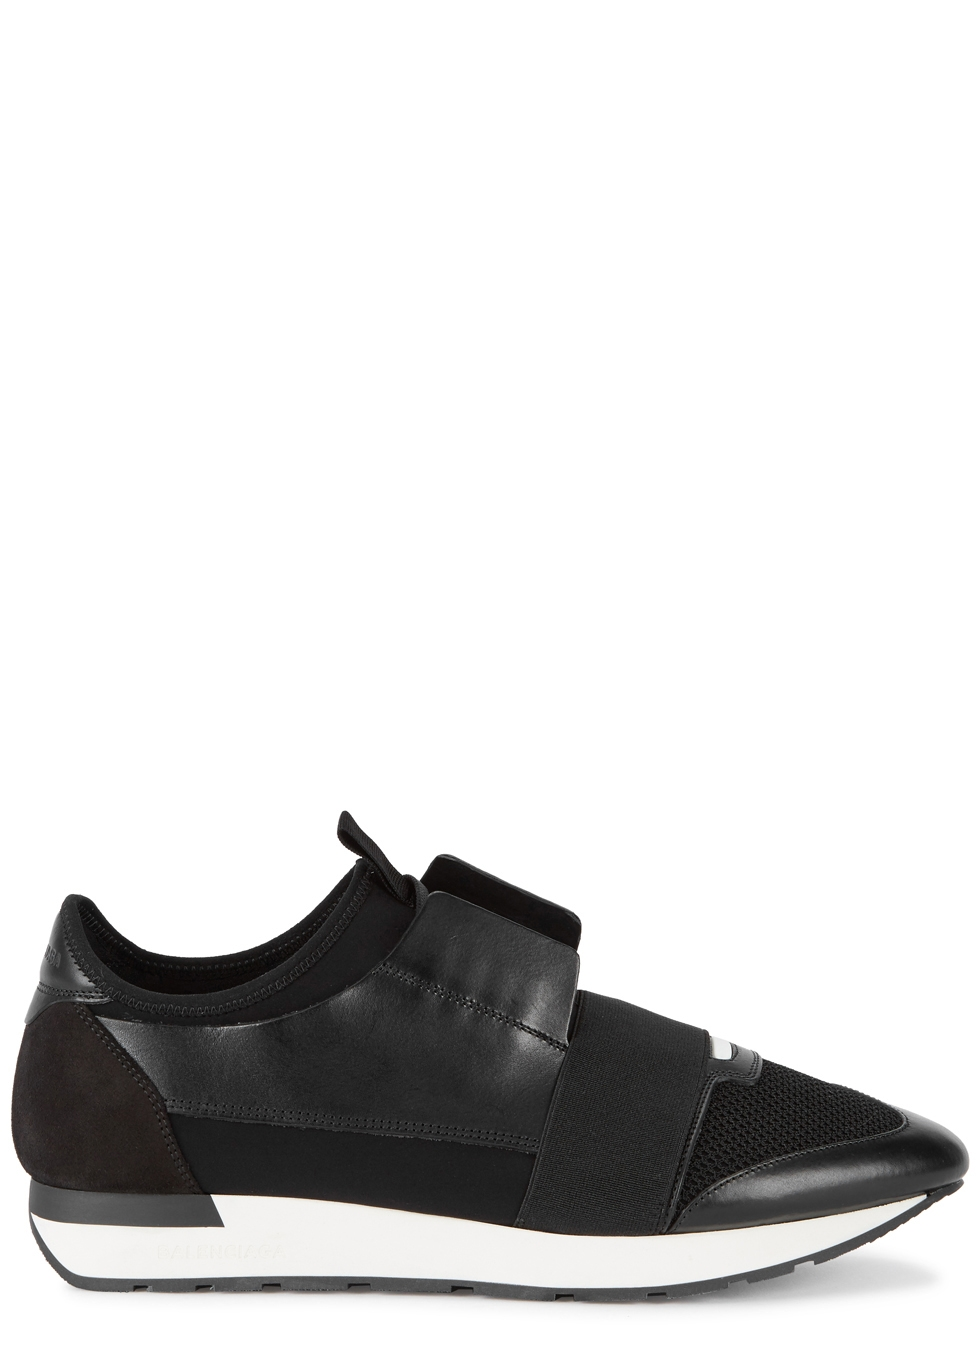 BALENCIAGA RACE BLACK PANELLED TRAINERS